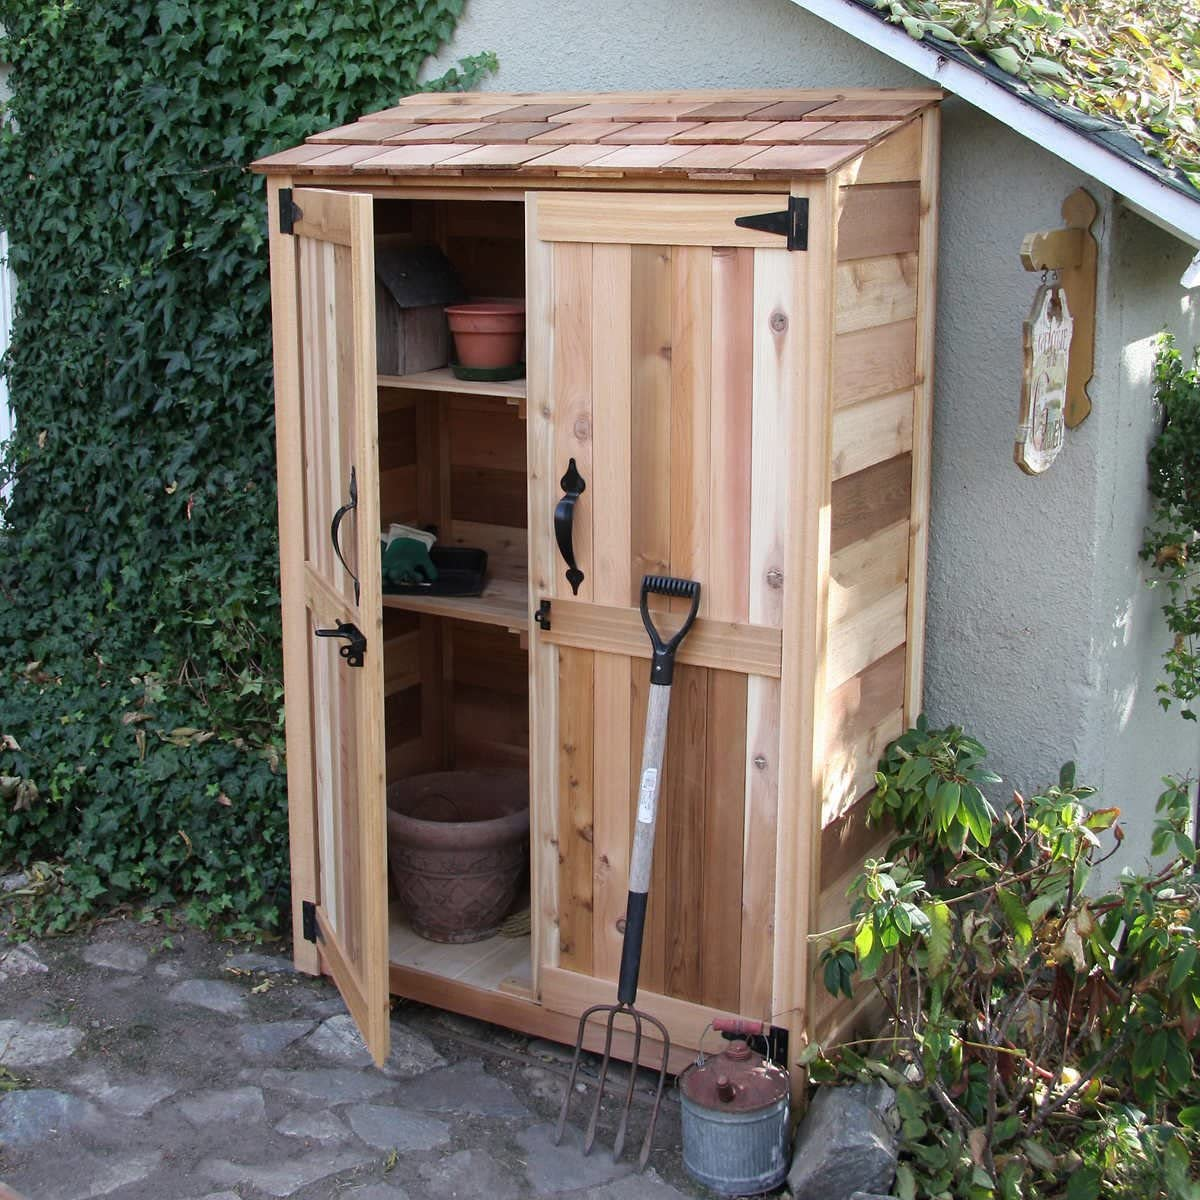 Outdoor Living Today 4' x Garden Storage Limited time cheap sale 2' Courier shipping free shipping Cedar Shed